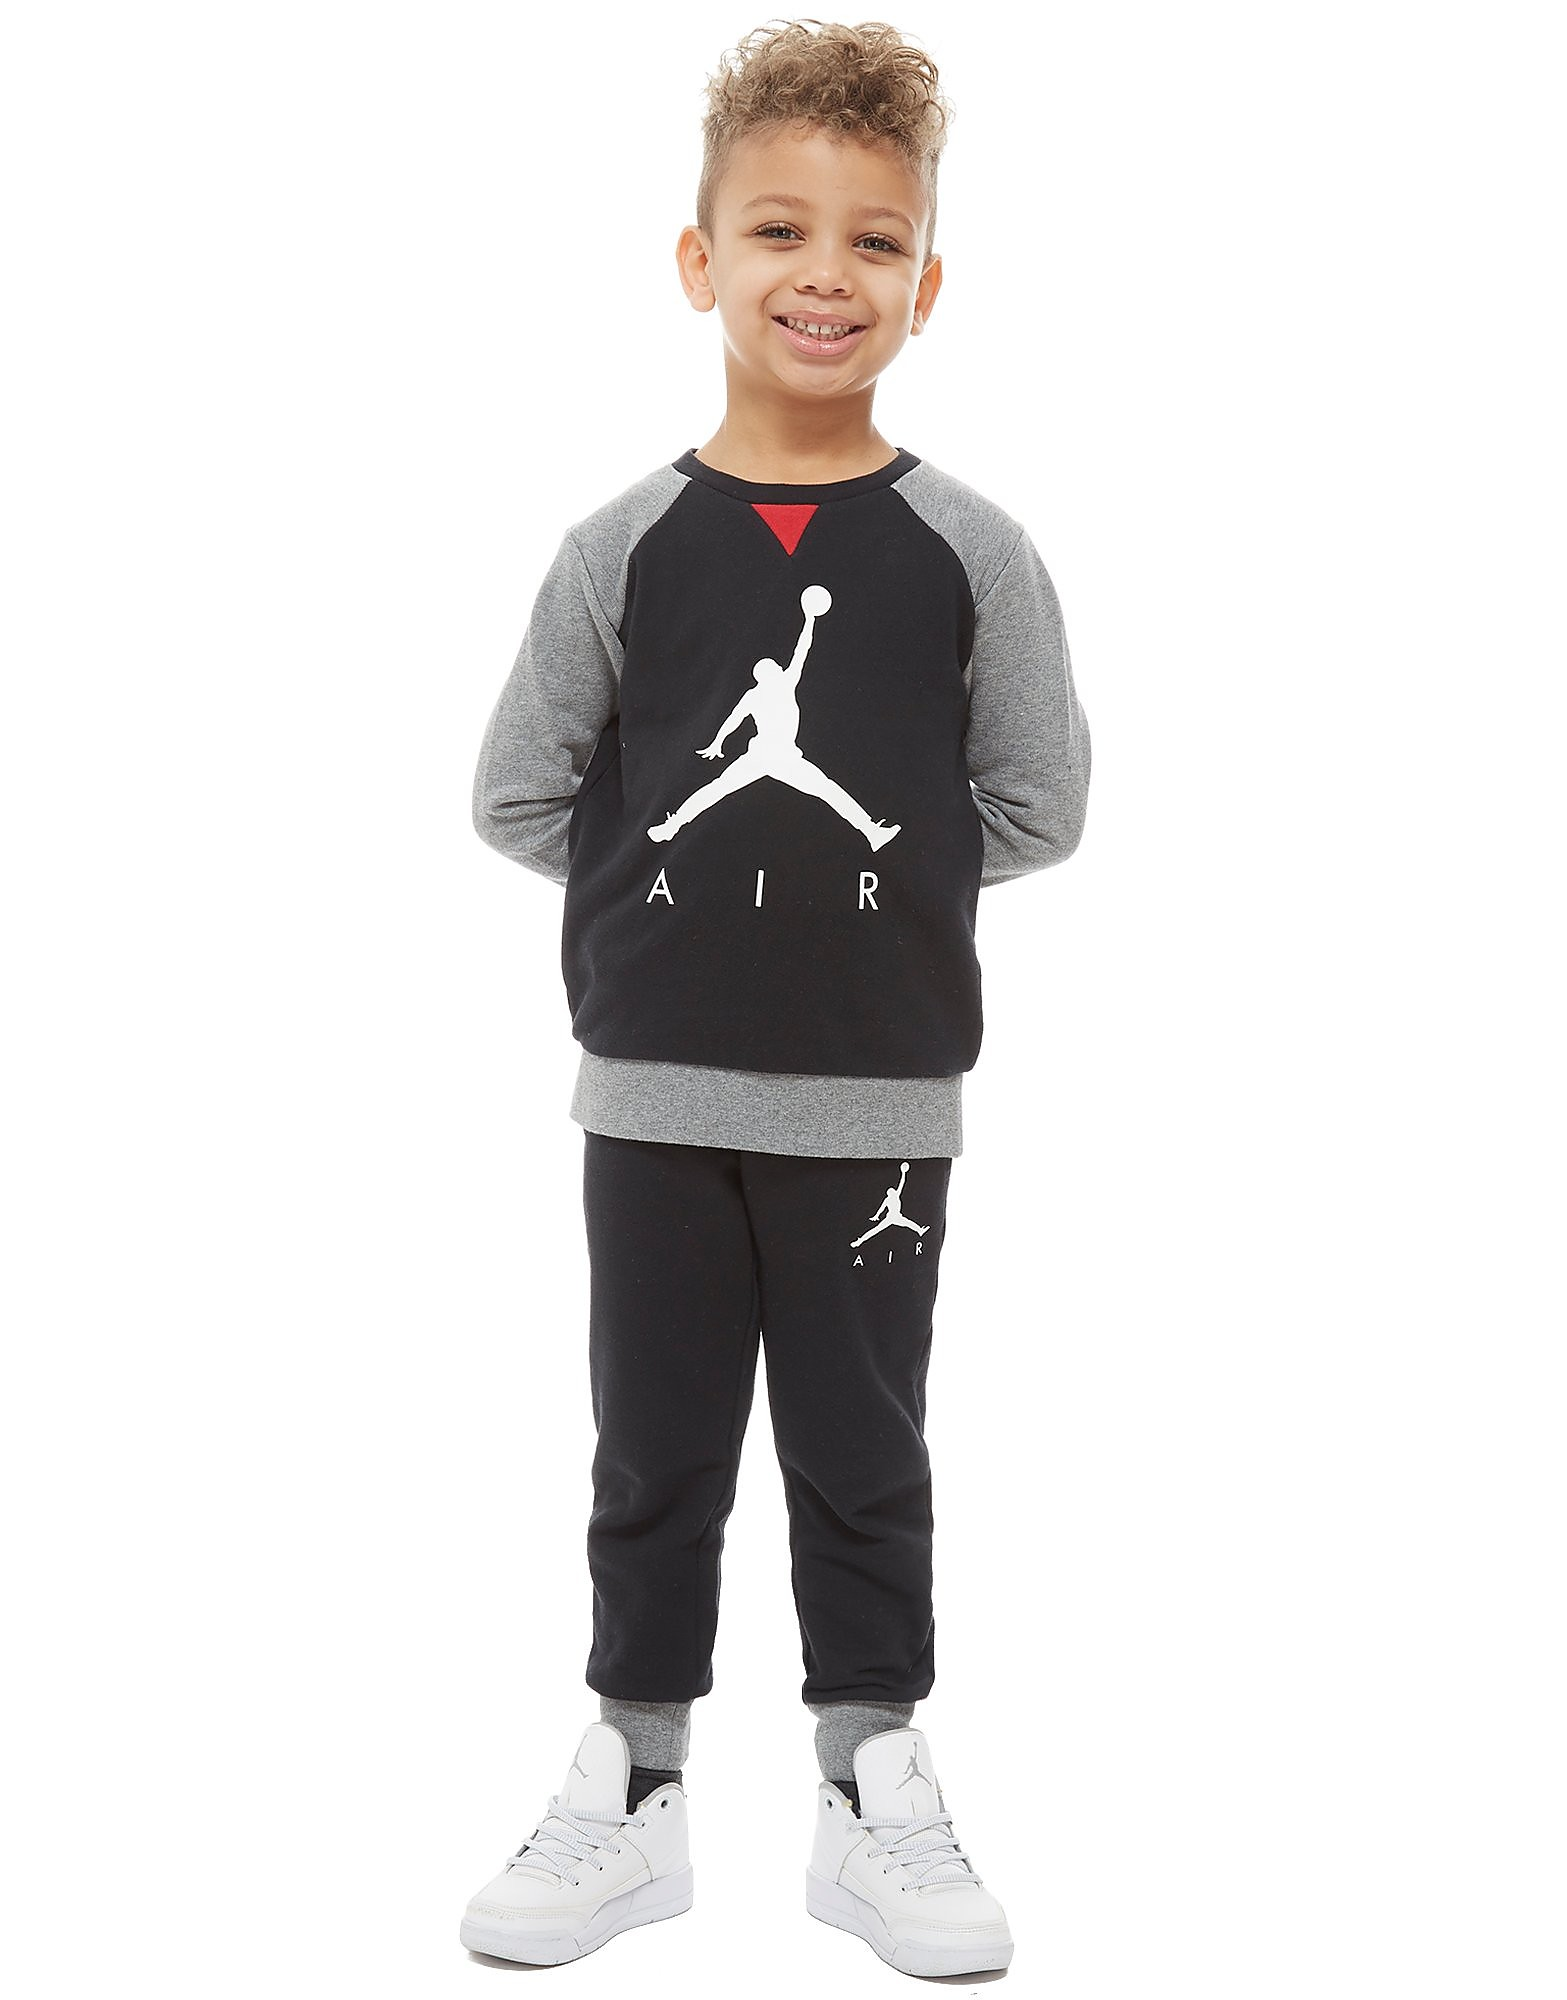 Jordan Air 3 Crew Suit Children